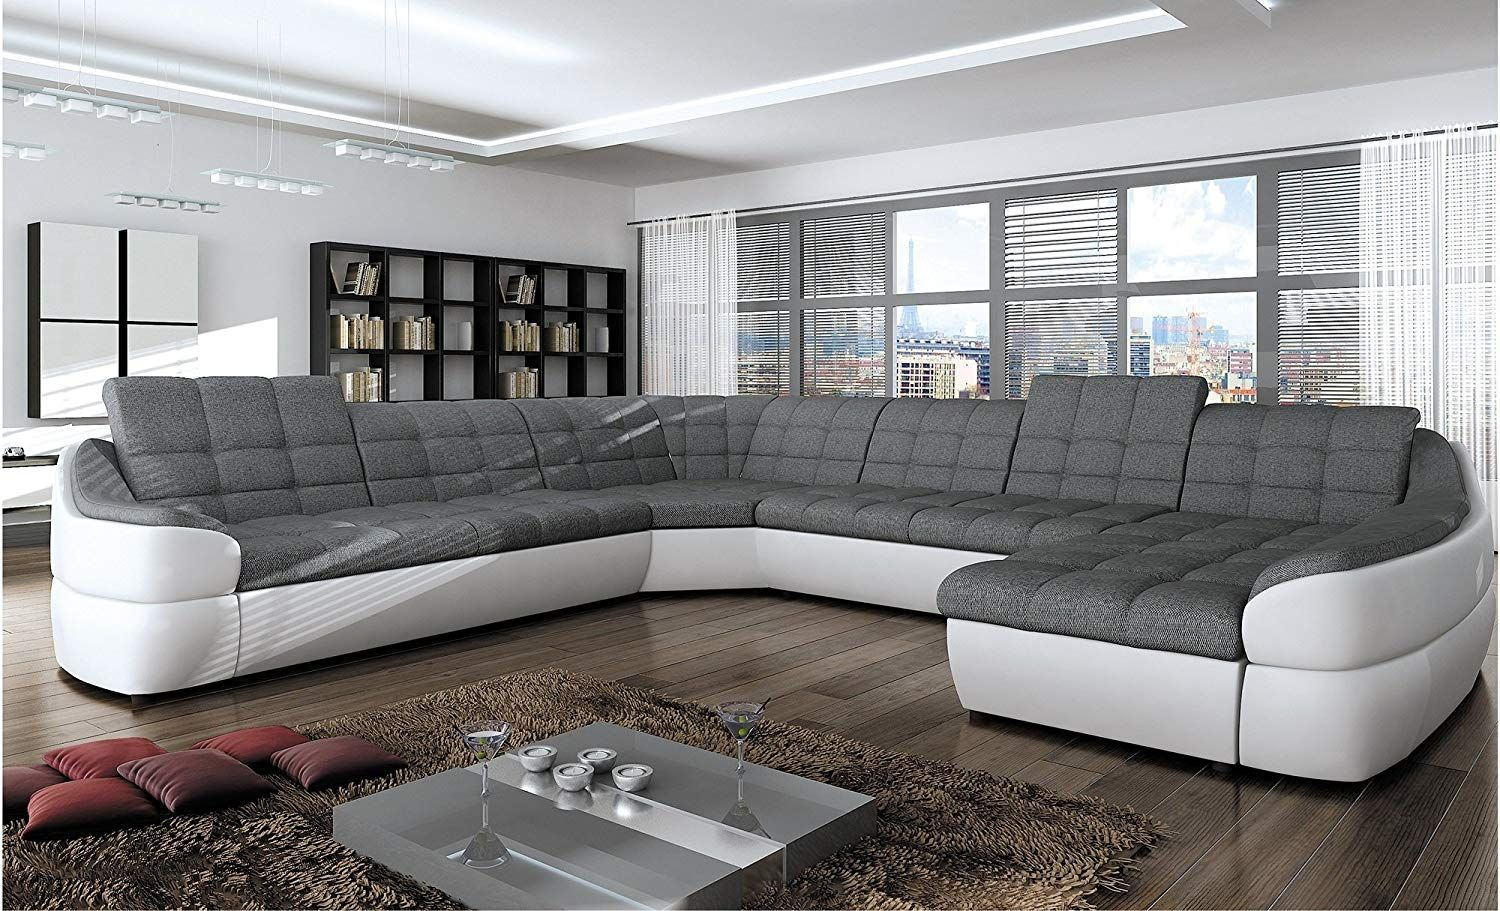 Bmf Infinity Xl White Grey 6 Seater Extra Large Faux Leather